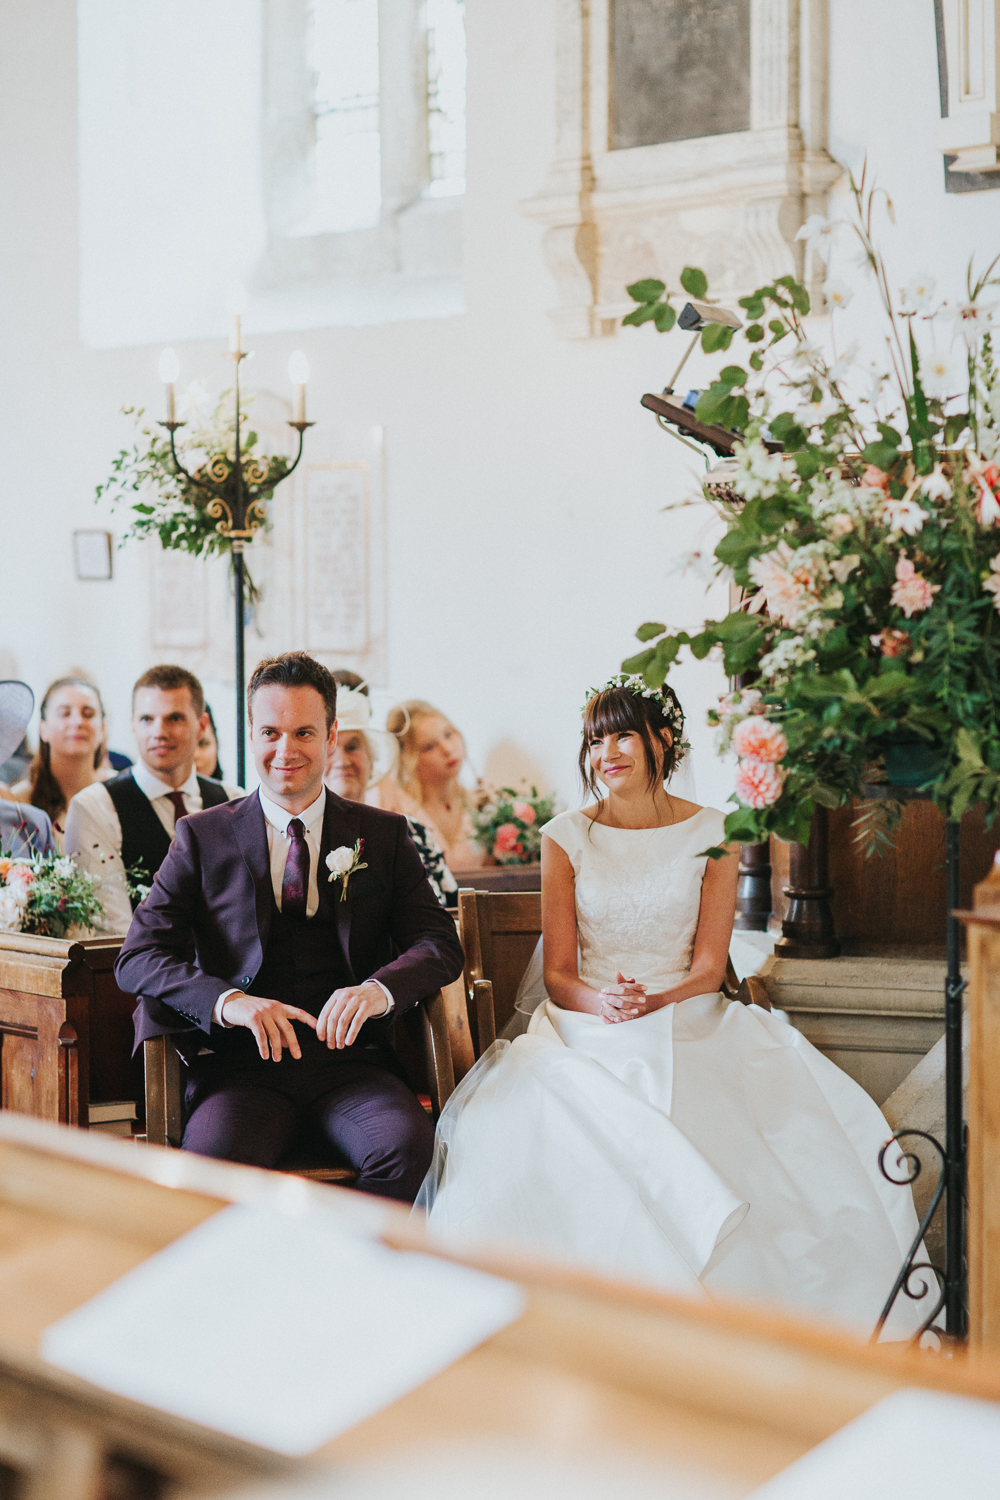 Delicate flower crown for a rustic church of england wedding delicate flower crown for a rustic church of england wedding with bride in pronovias and reception at the local pub images by kate gray photography izmirmasajfo